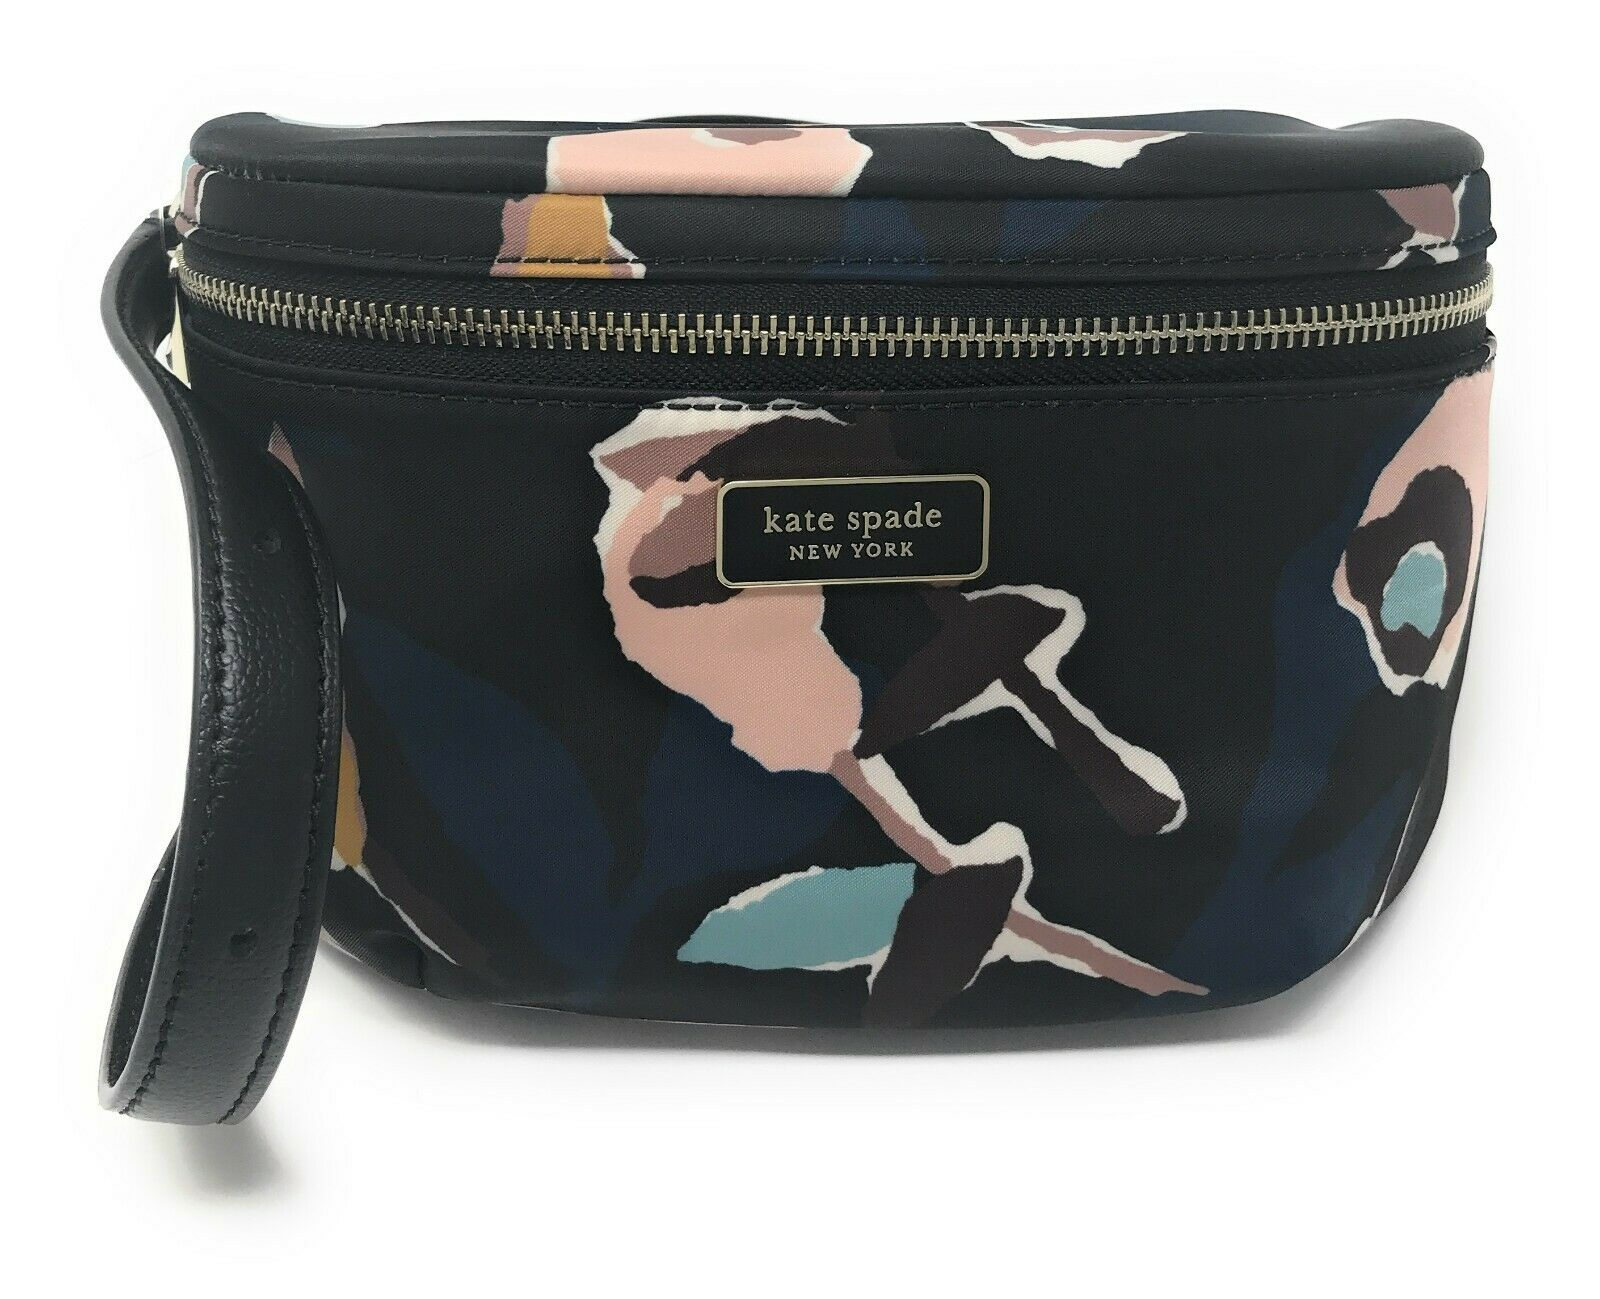 Kate Spade Dawn Paper Belt Bag Fanny Pack Black Floral WKRU6099 WKRU5959 $179